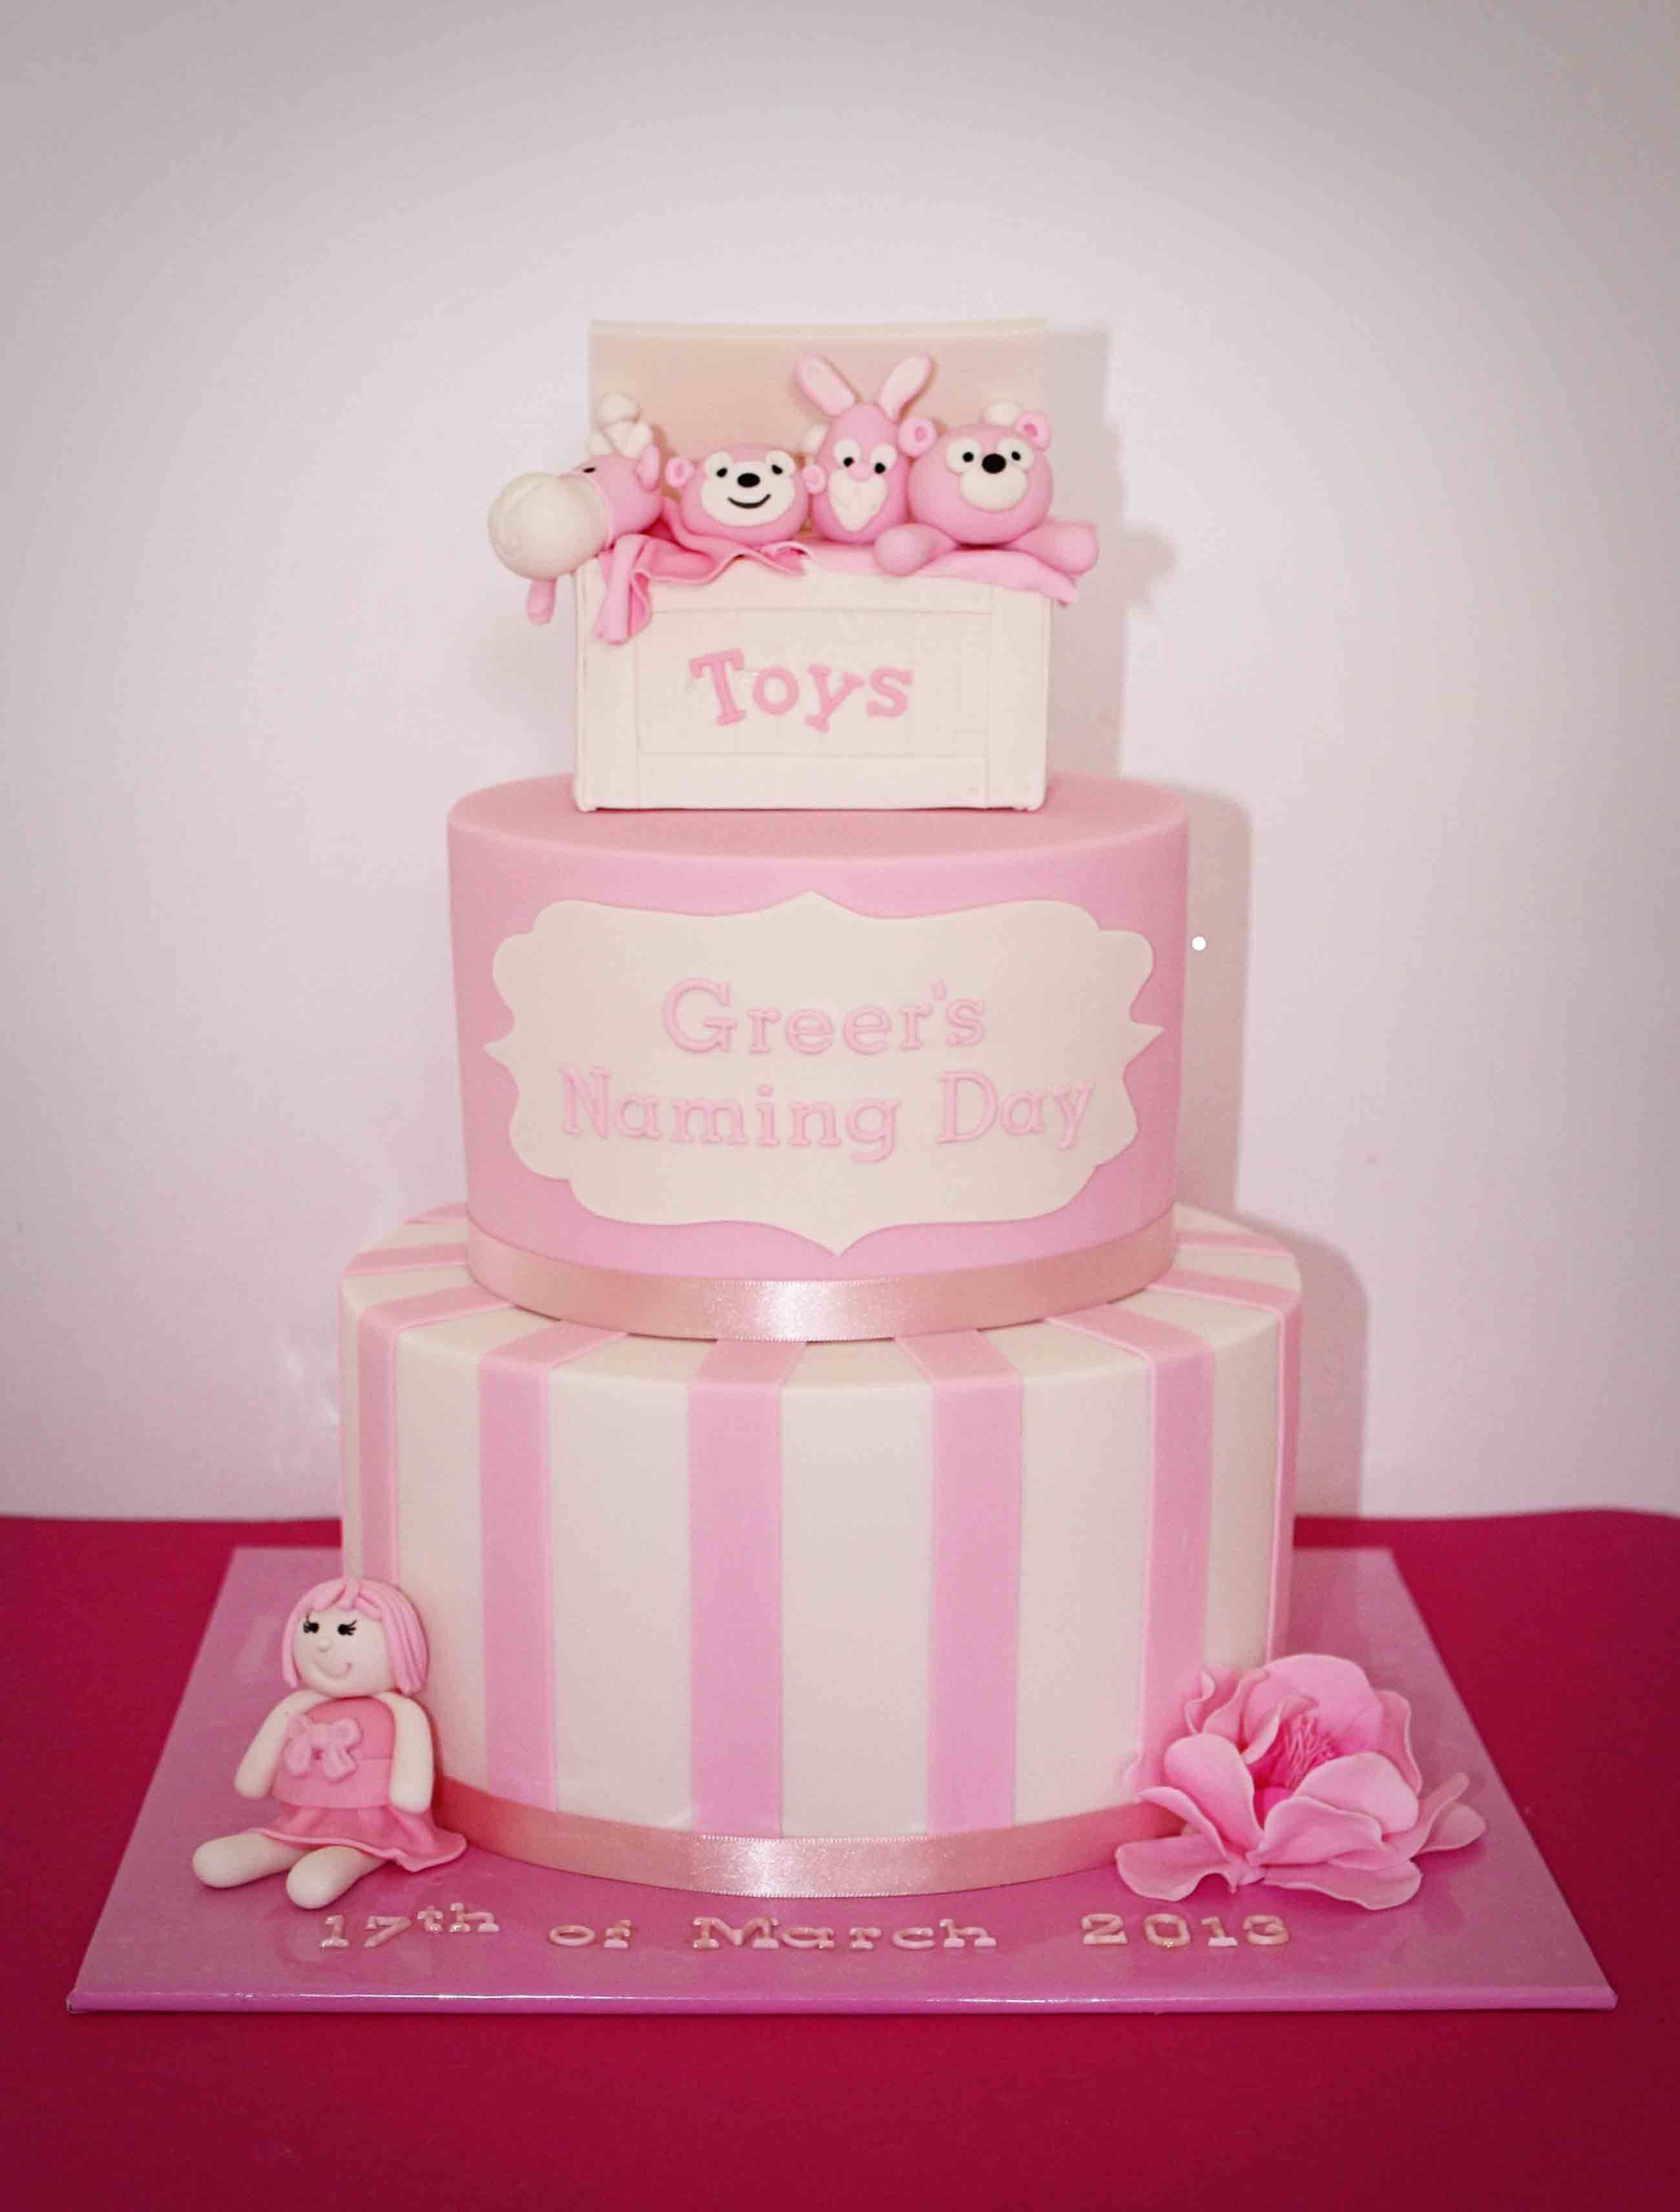 2 Tier Vanilla Cake Filled With Bean SMBC And RKT Toy Box Topper Based On An Original Design By Custom Designs